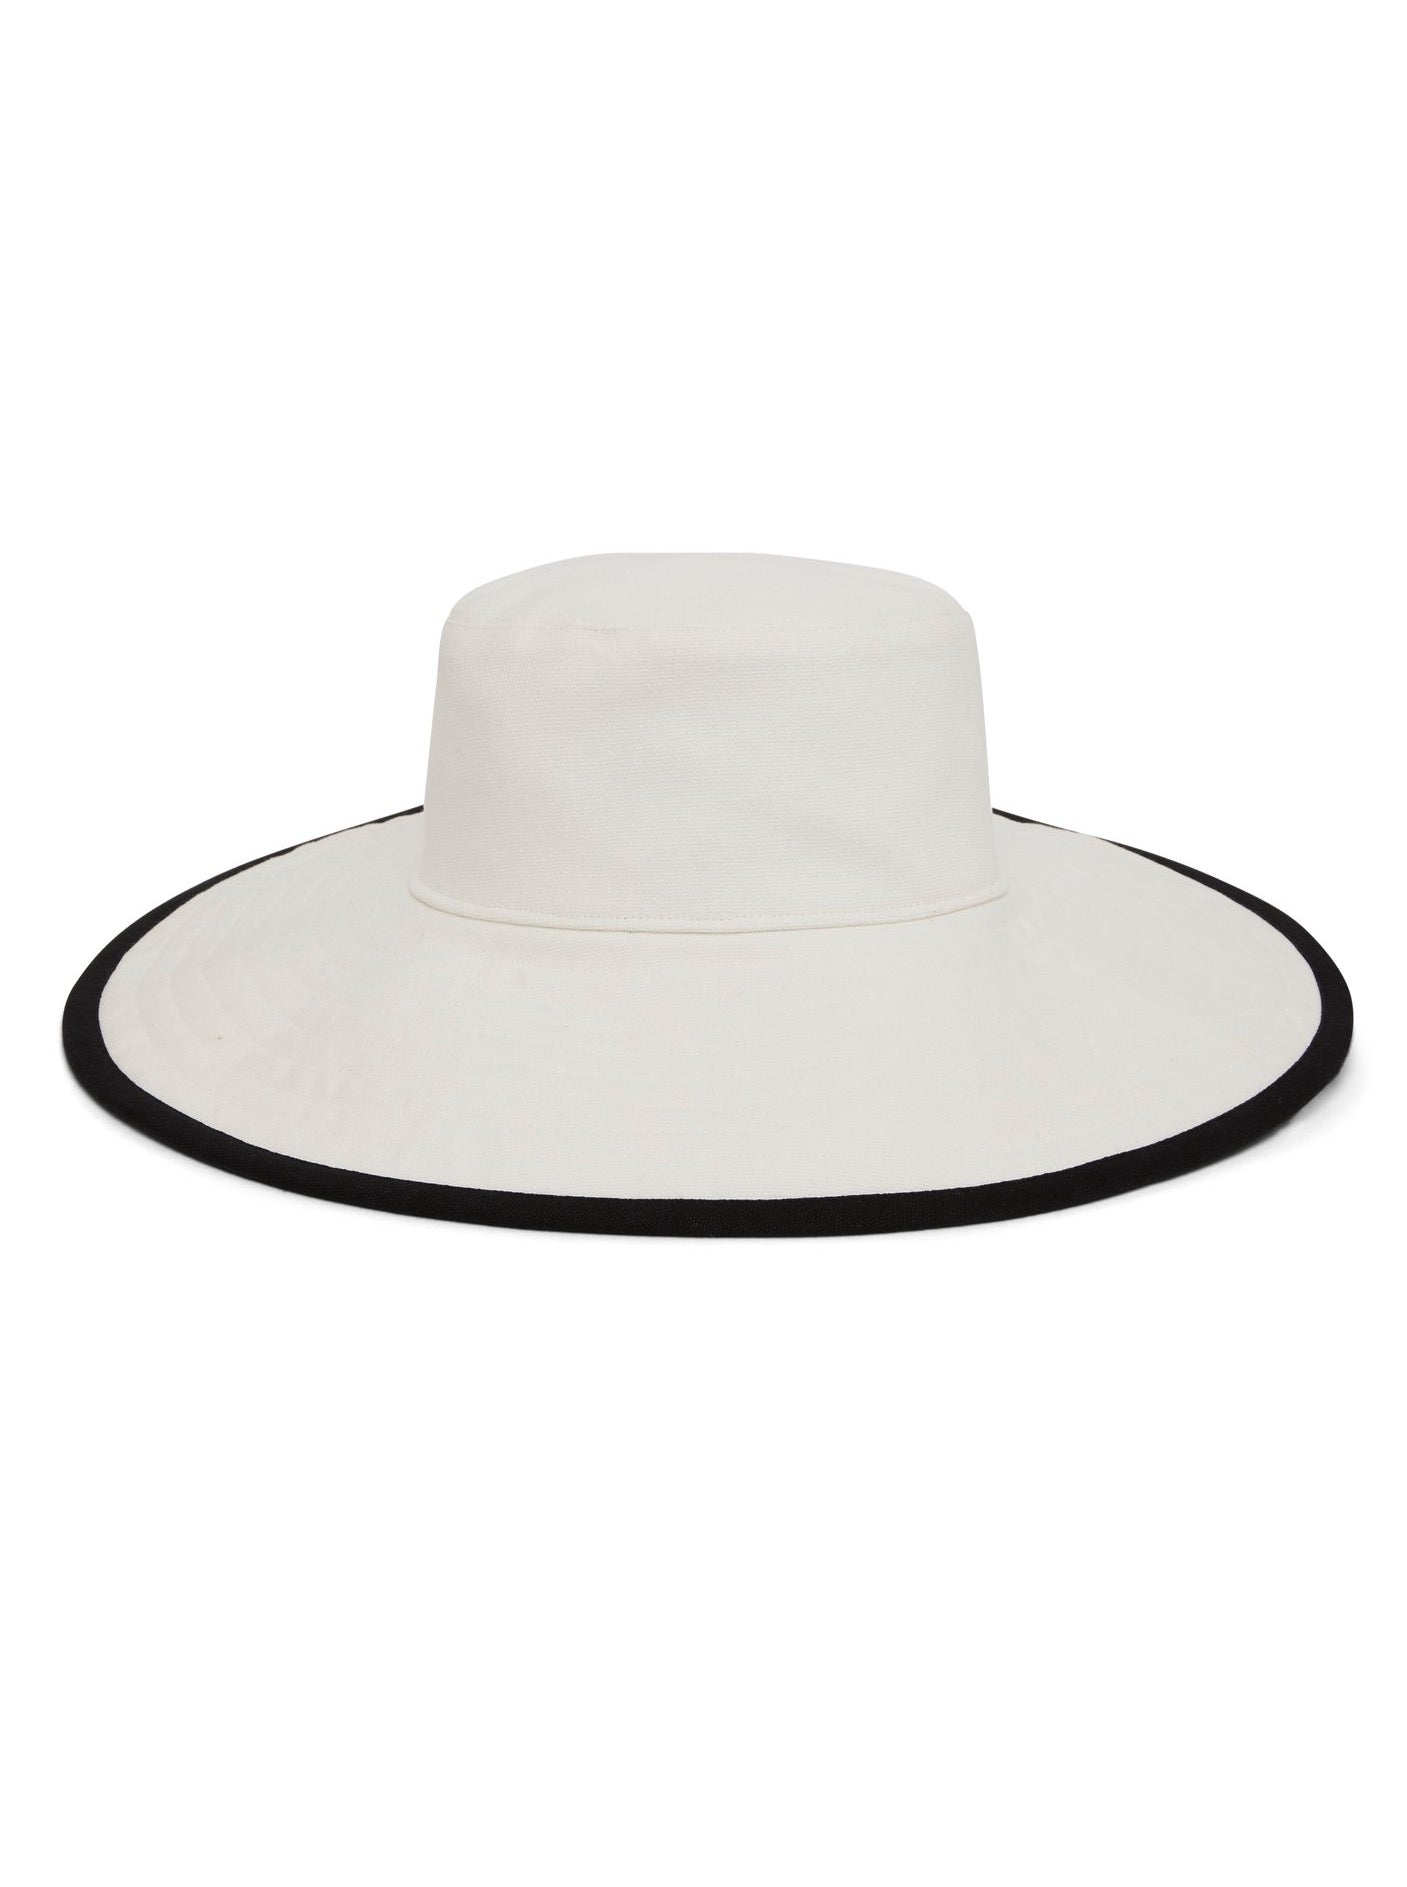 SIR Maurice Floppy Hat in Ivory